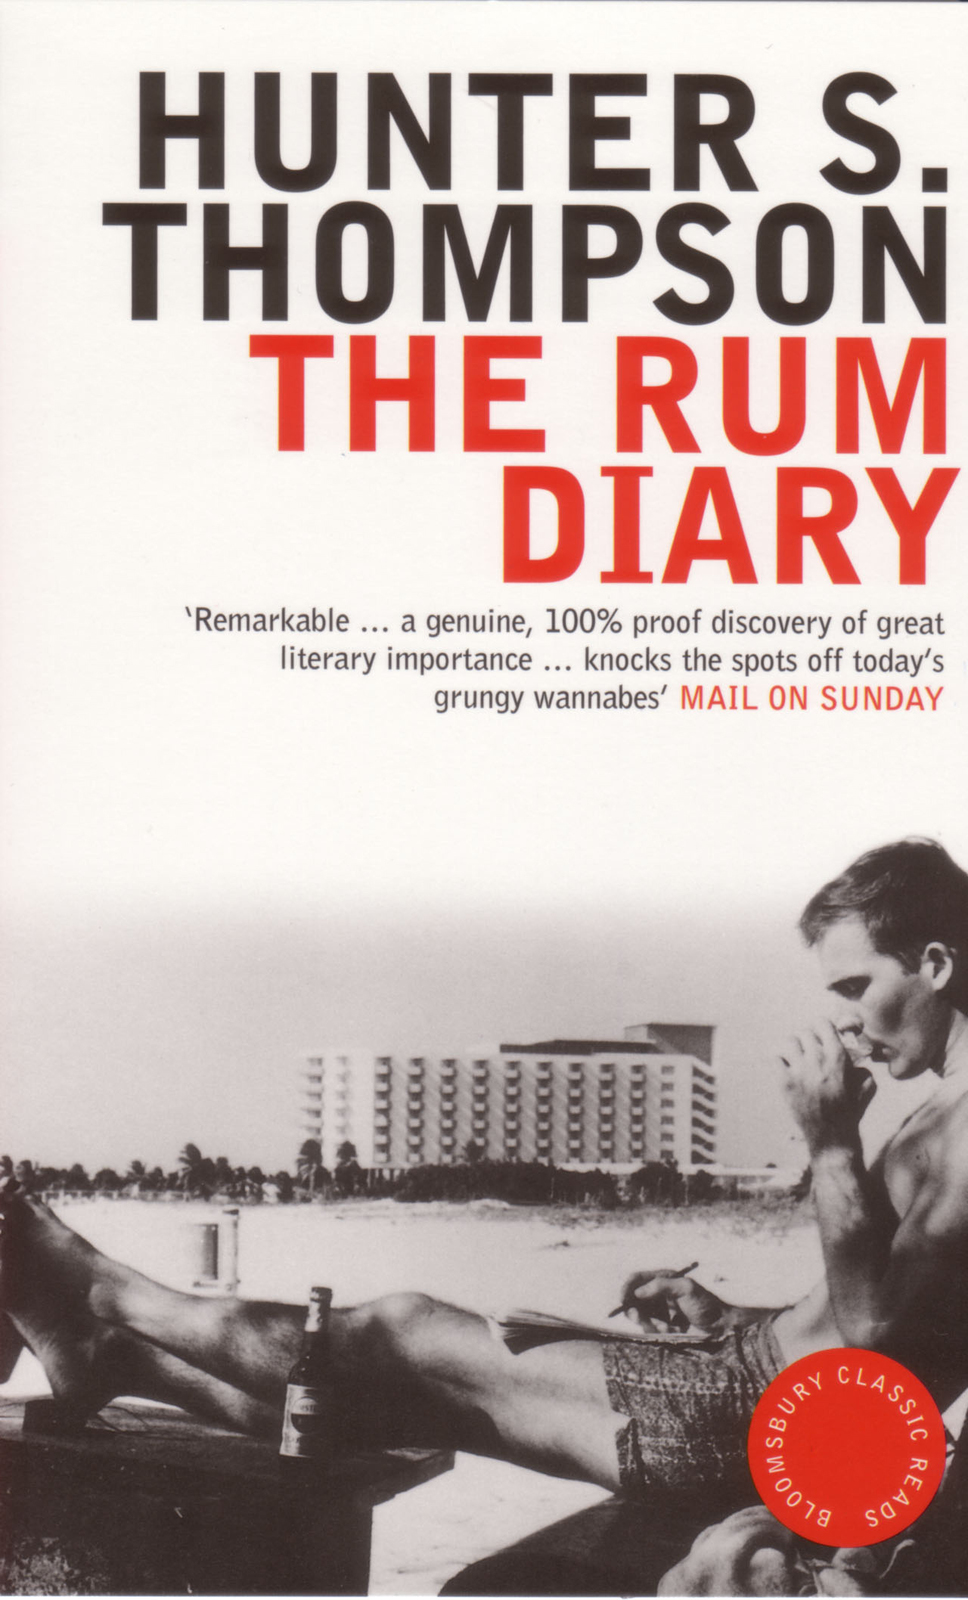 The Rum Diary by Hunter S Thompson image